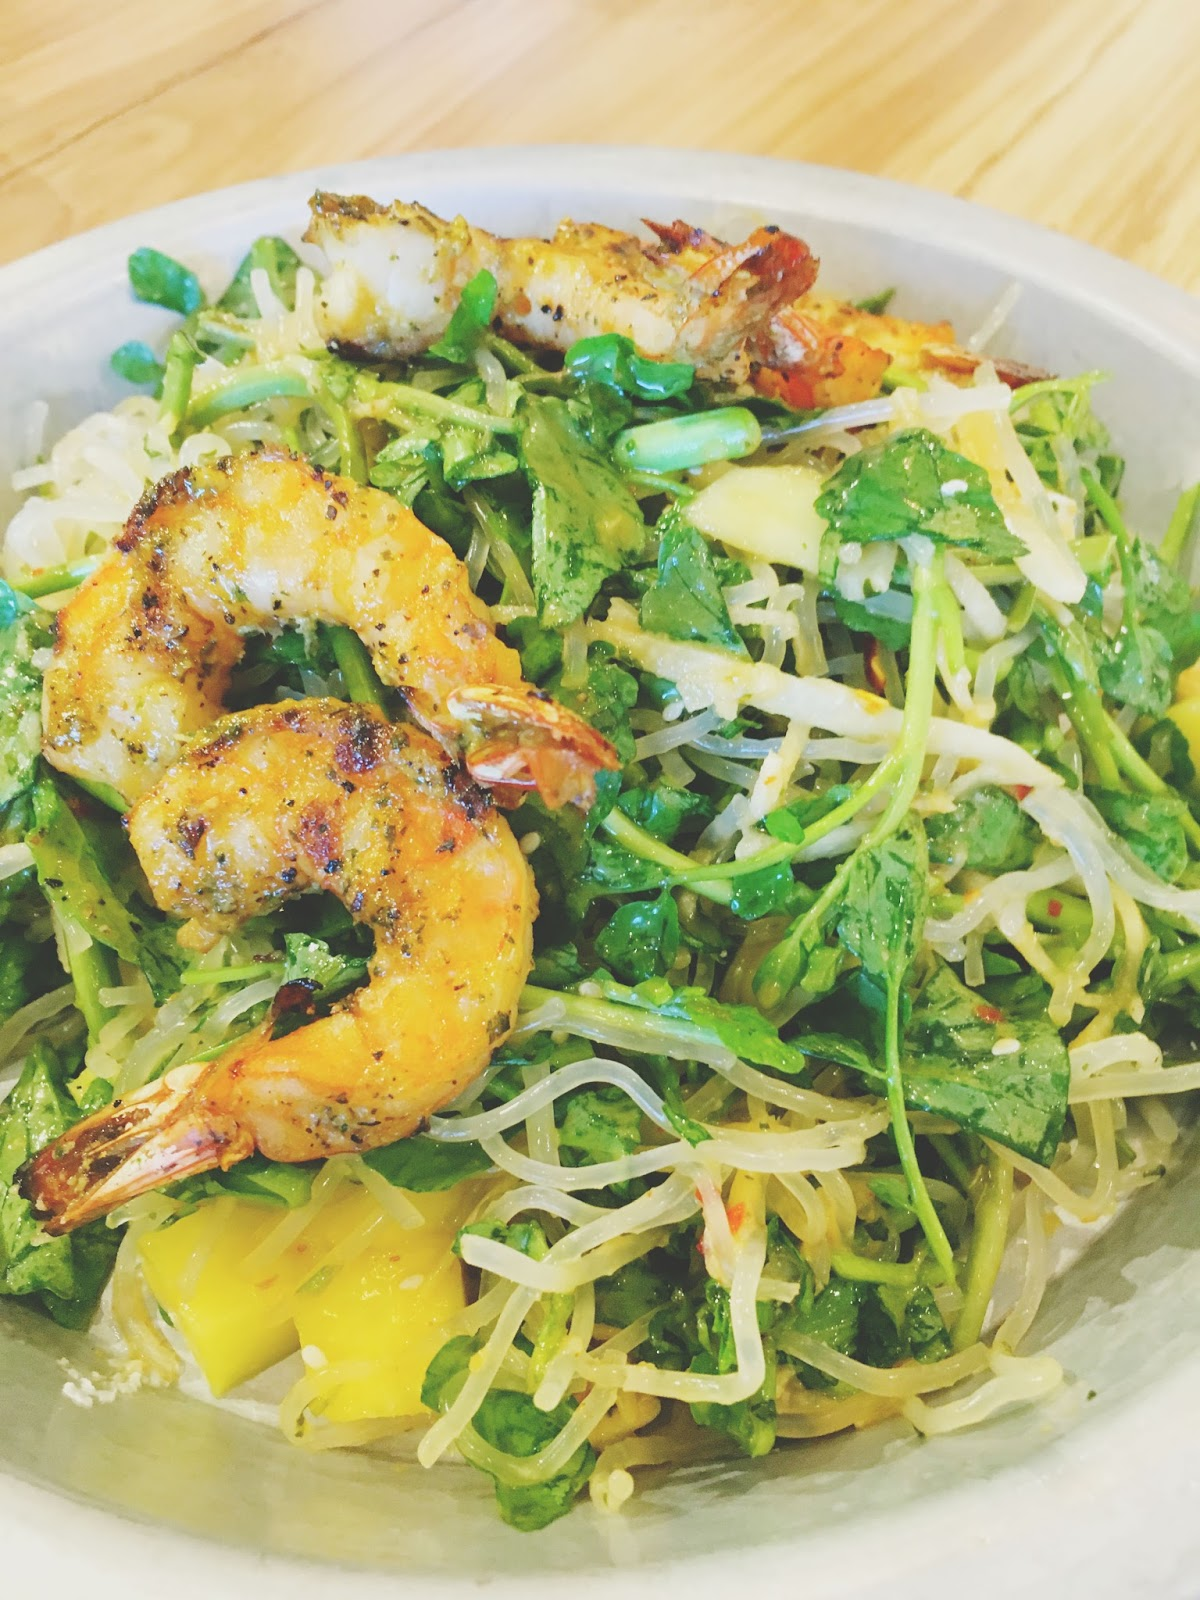 Thai salad with grilled shrimp at H.S. Green - A healthy restaurant in Houston, Texas